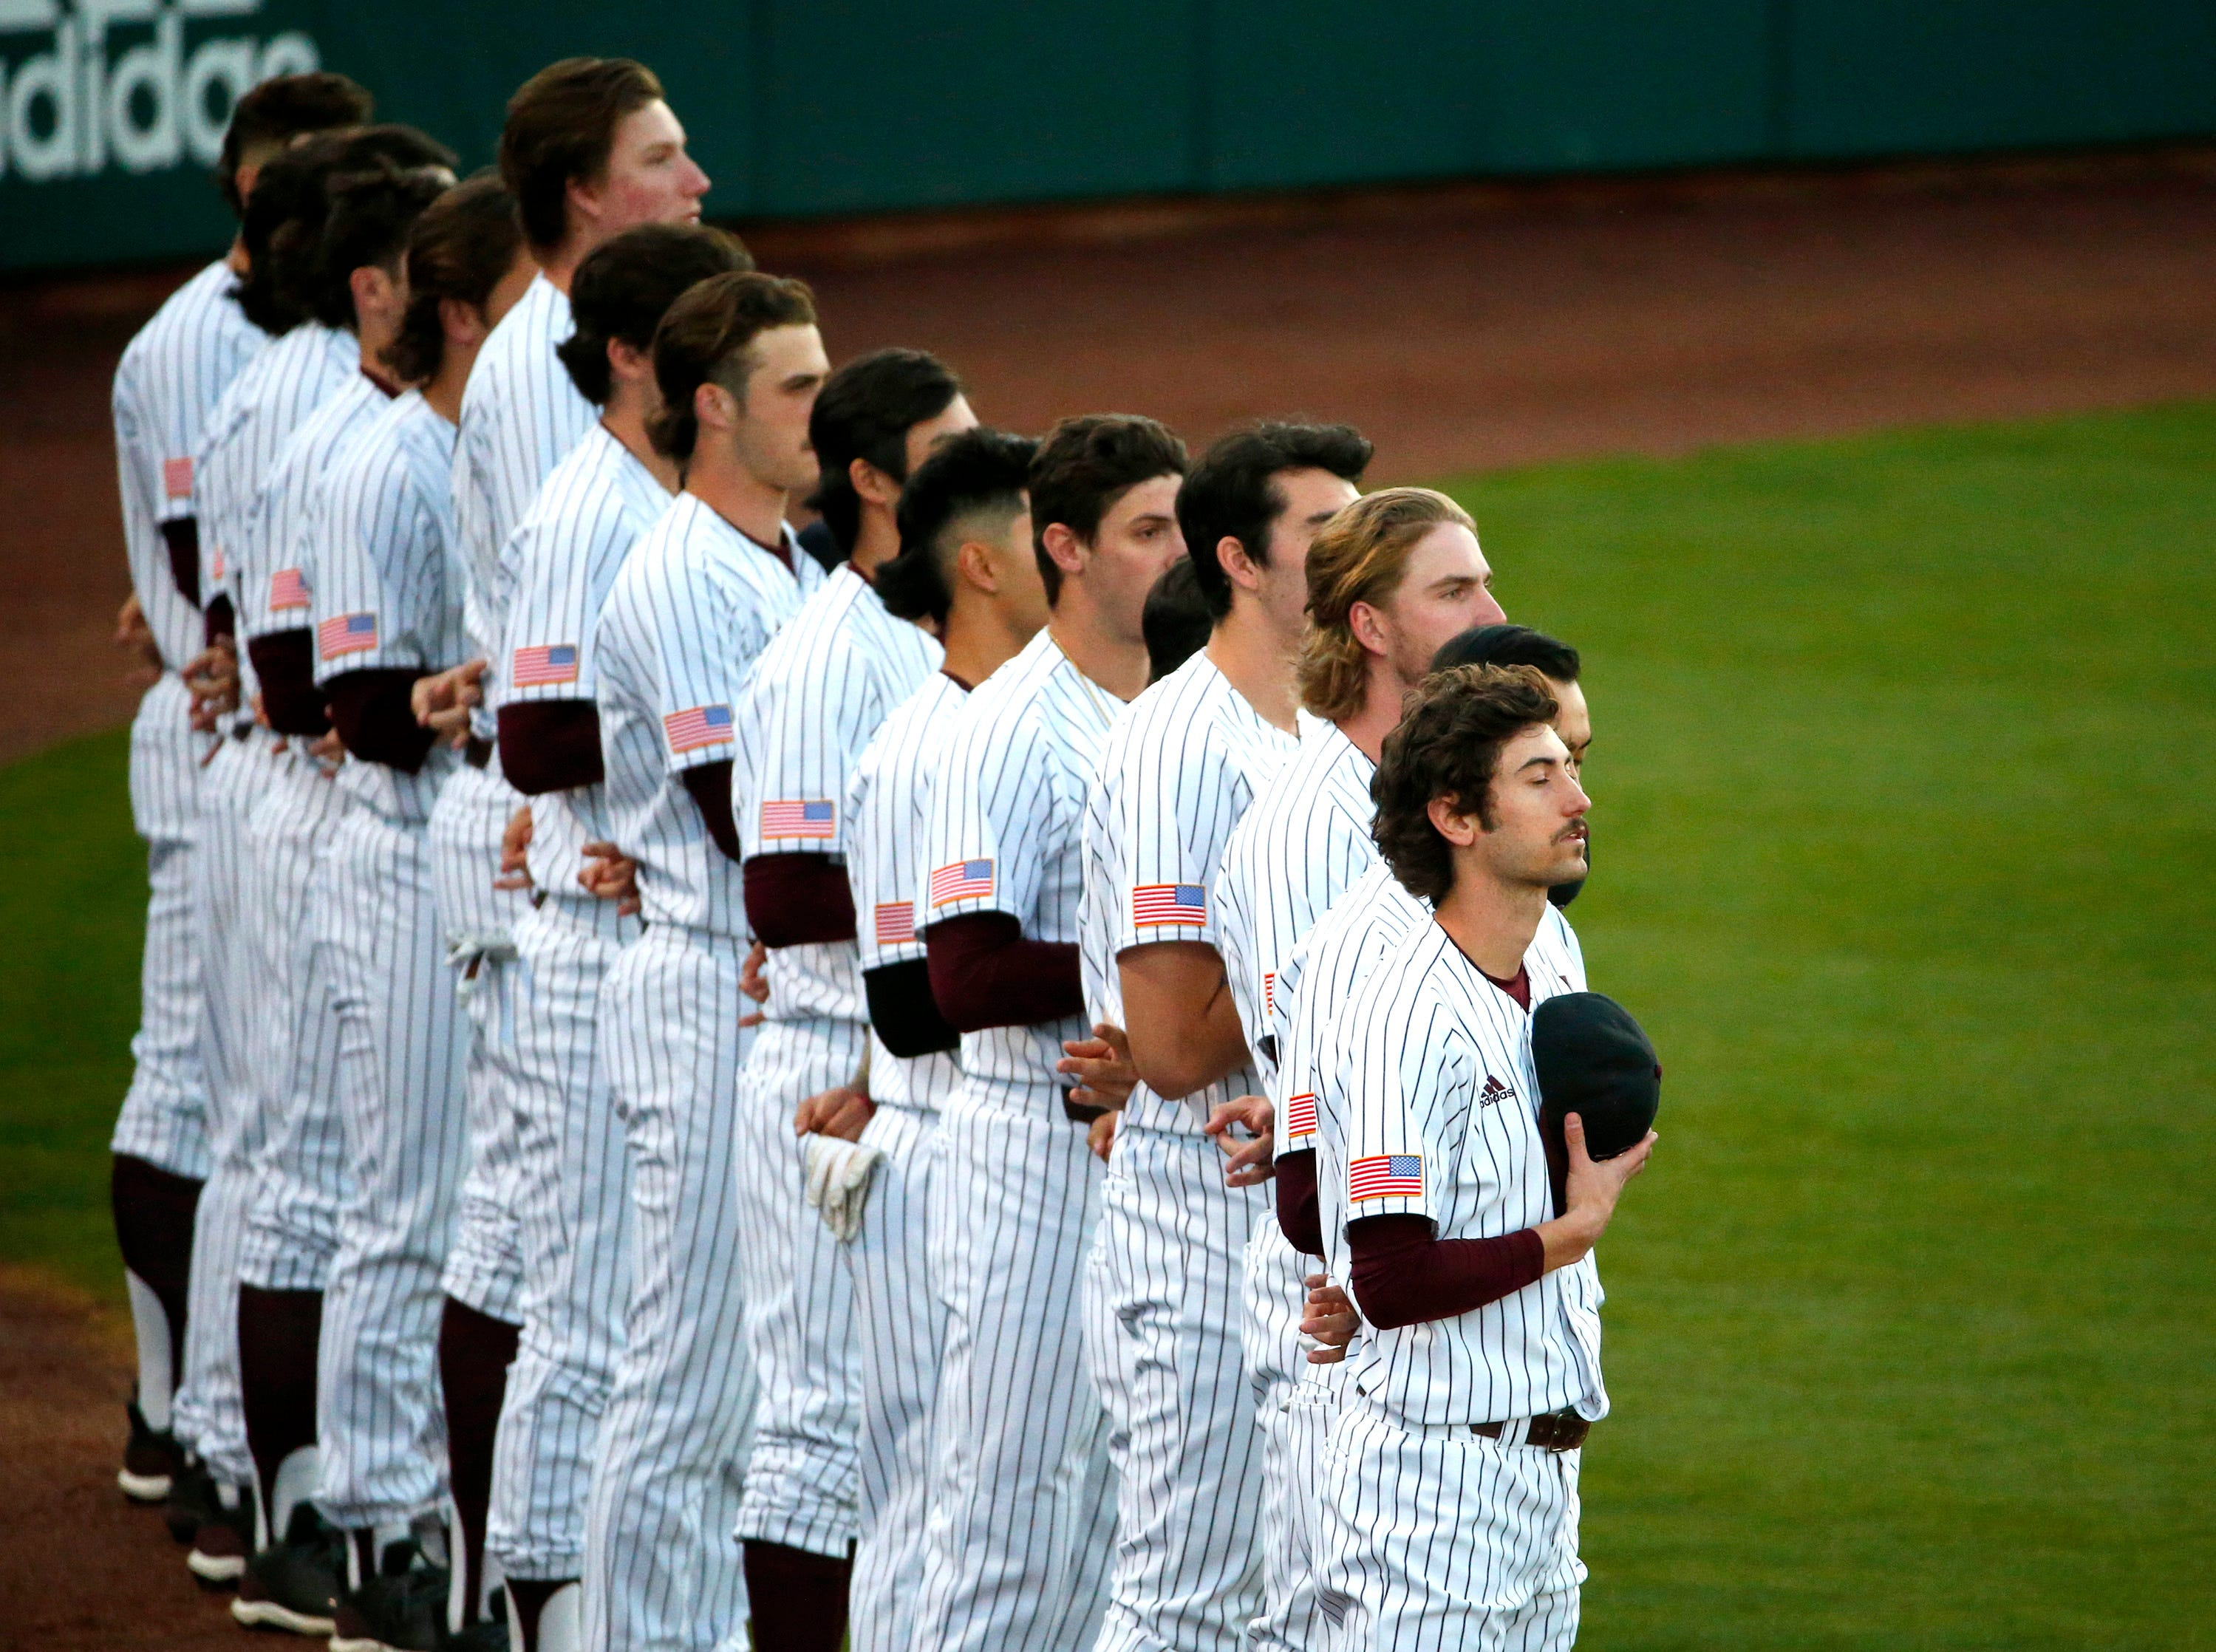 ASU stands for the National Anthem before a baseball game against New Mexico at Phoenix Municipal Stadium on March 13, 2019.